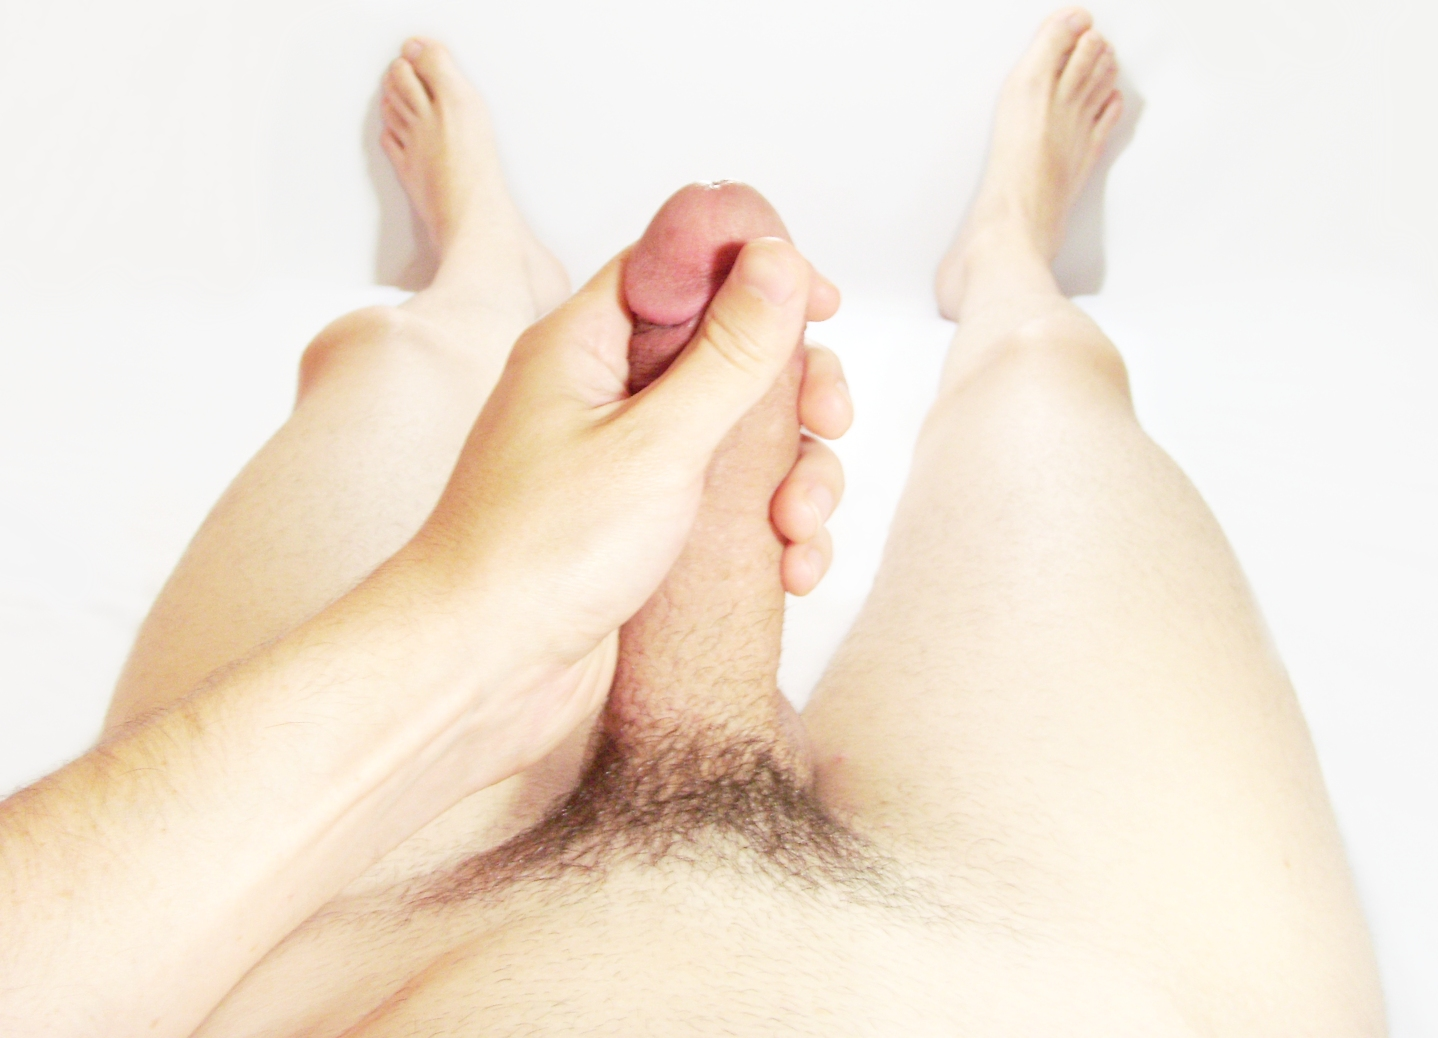 The ultimate male masturbation guide